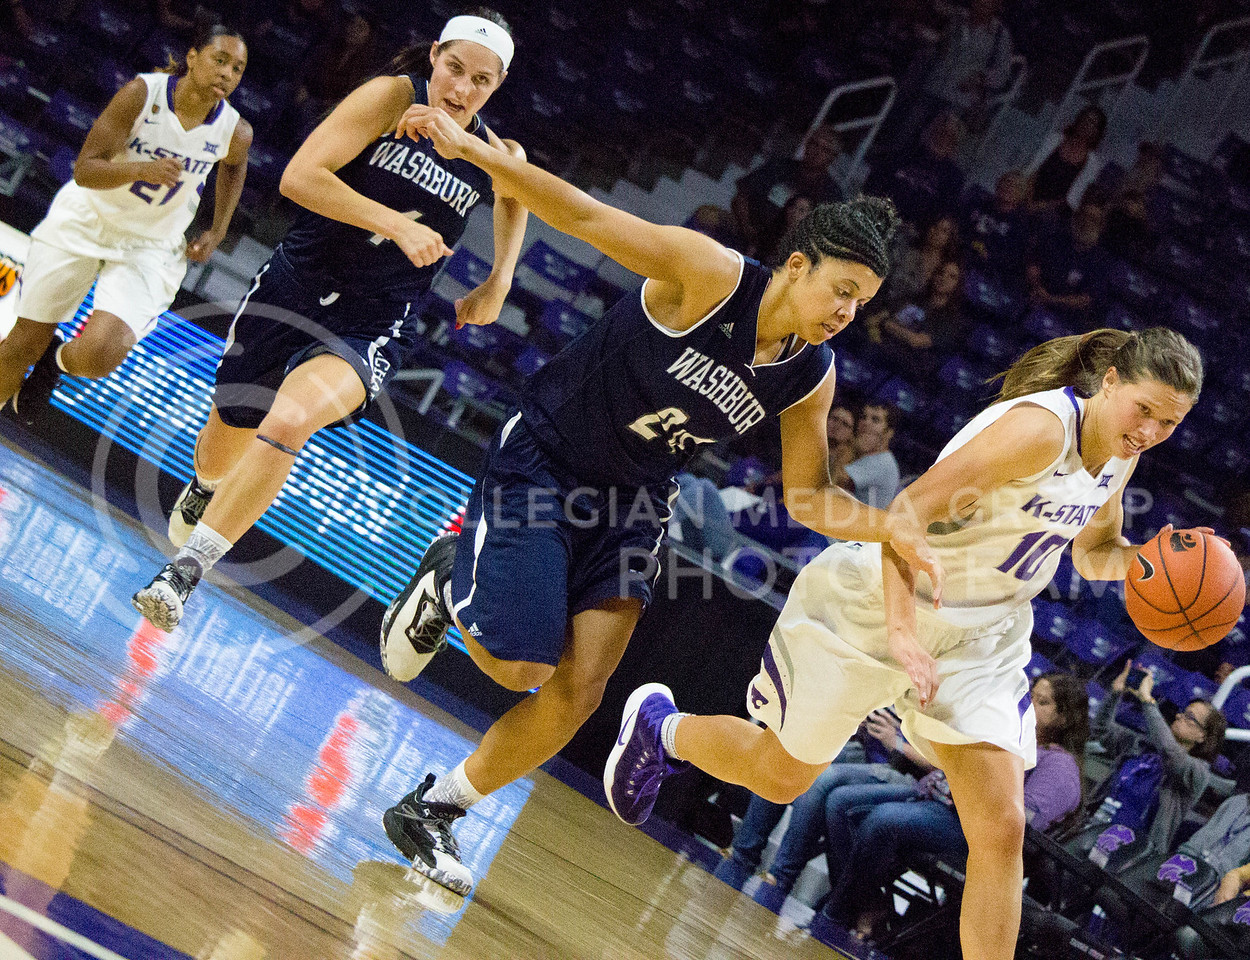 Kayla Goth, sophomore guard, runs with the ball during the K-State game against Washburn in Bramlage Coliseum on Nov. 4, 2016. (Alanud Alanazi   The Collegian)